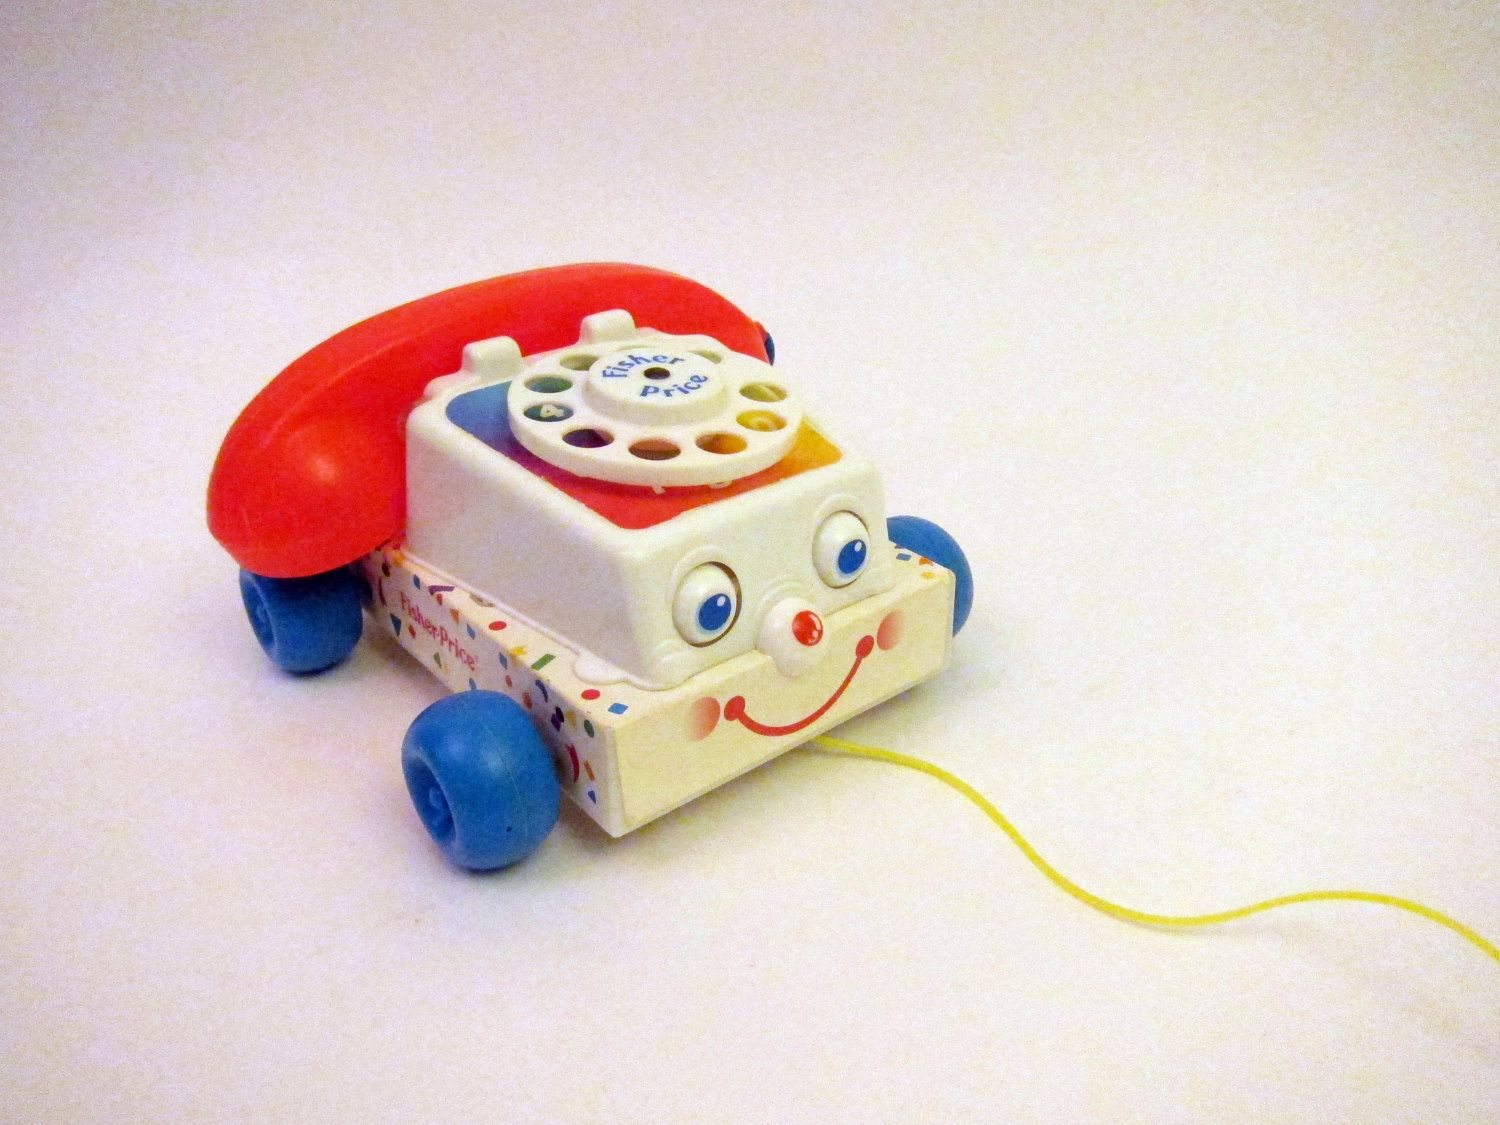 Classic 80s Toys : Vintage fisher price chatter telephone used to put coins